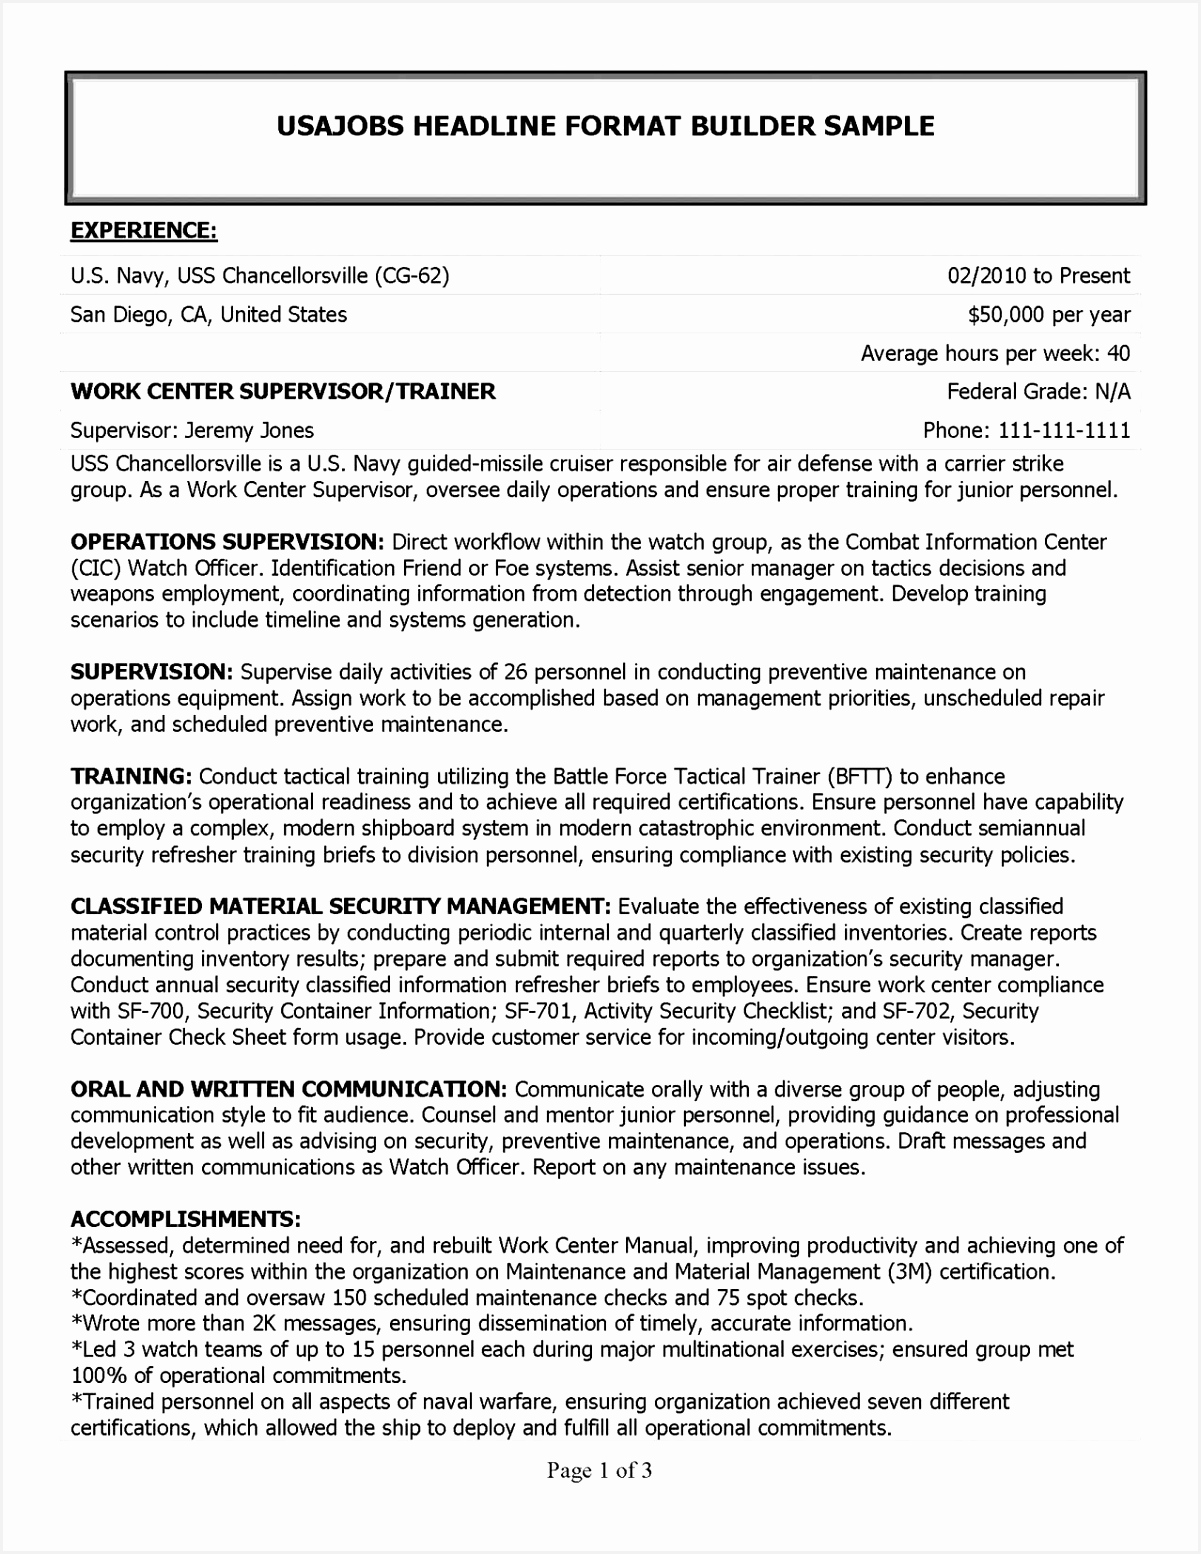 Examples Resumes for Jobs Avdlc Luxury Supply Chain Resume Examples Staggering Example Job Resume Awesome Of Examples Resumes for Jobs Nfcpi Awesome How Do I Write A Resume for A Job Example Typing A Resume Fresh